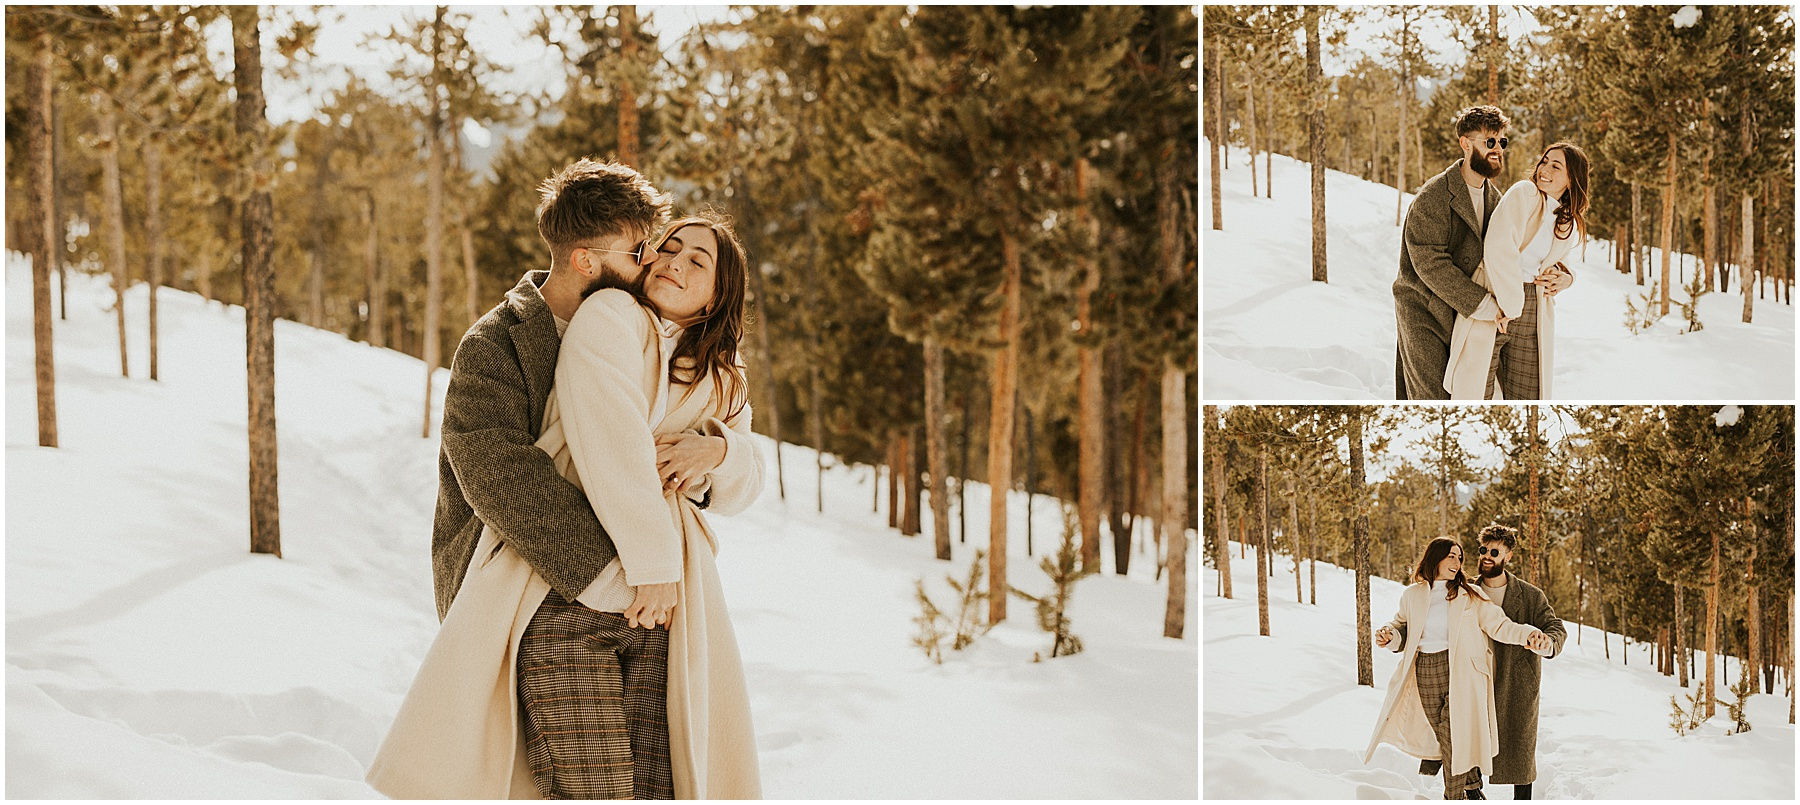 Proposal and engagement session in Breckenridge, Colorado Saphire Point_0393.jpg